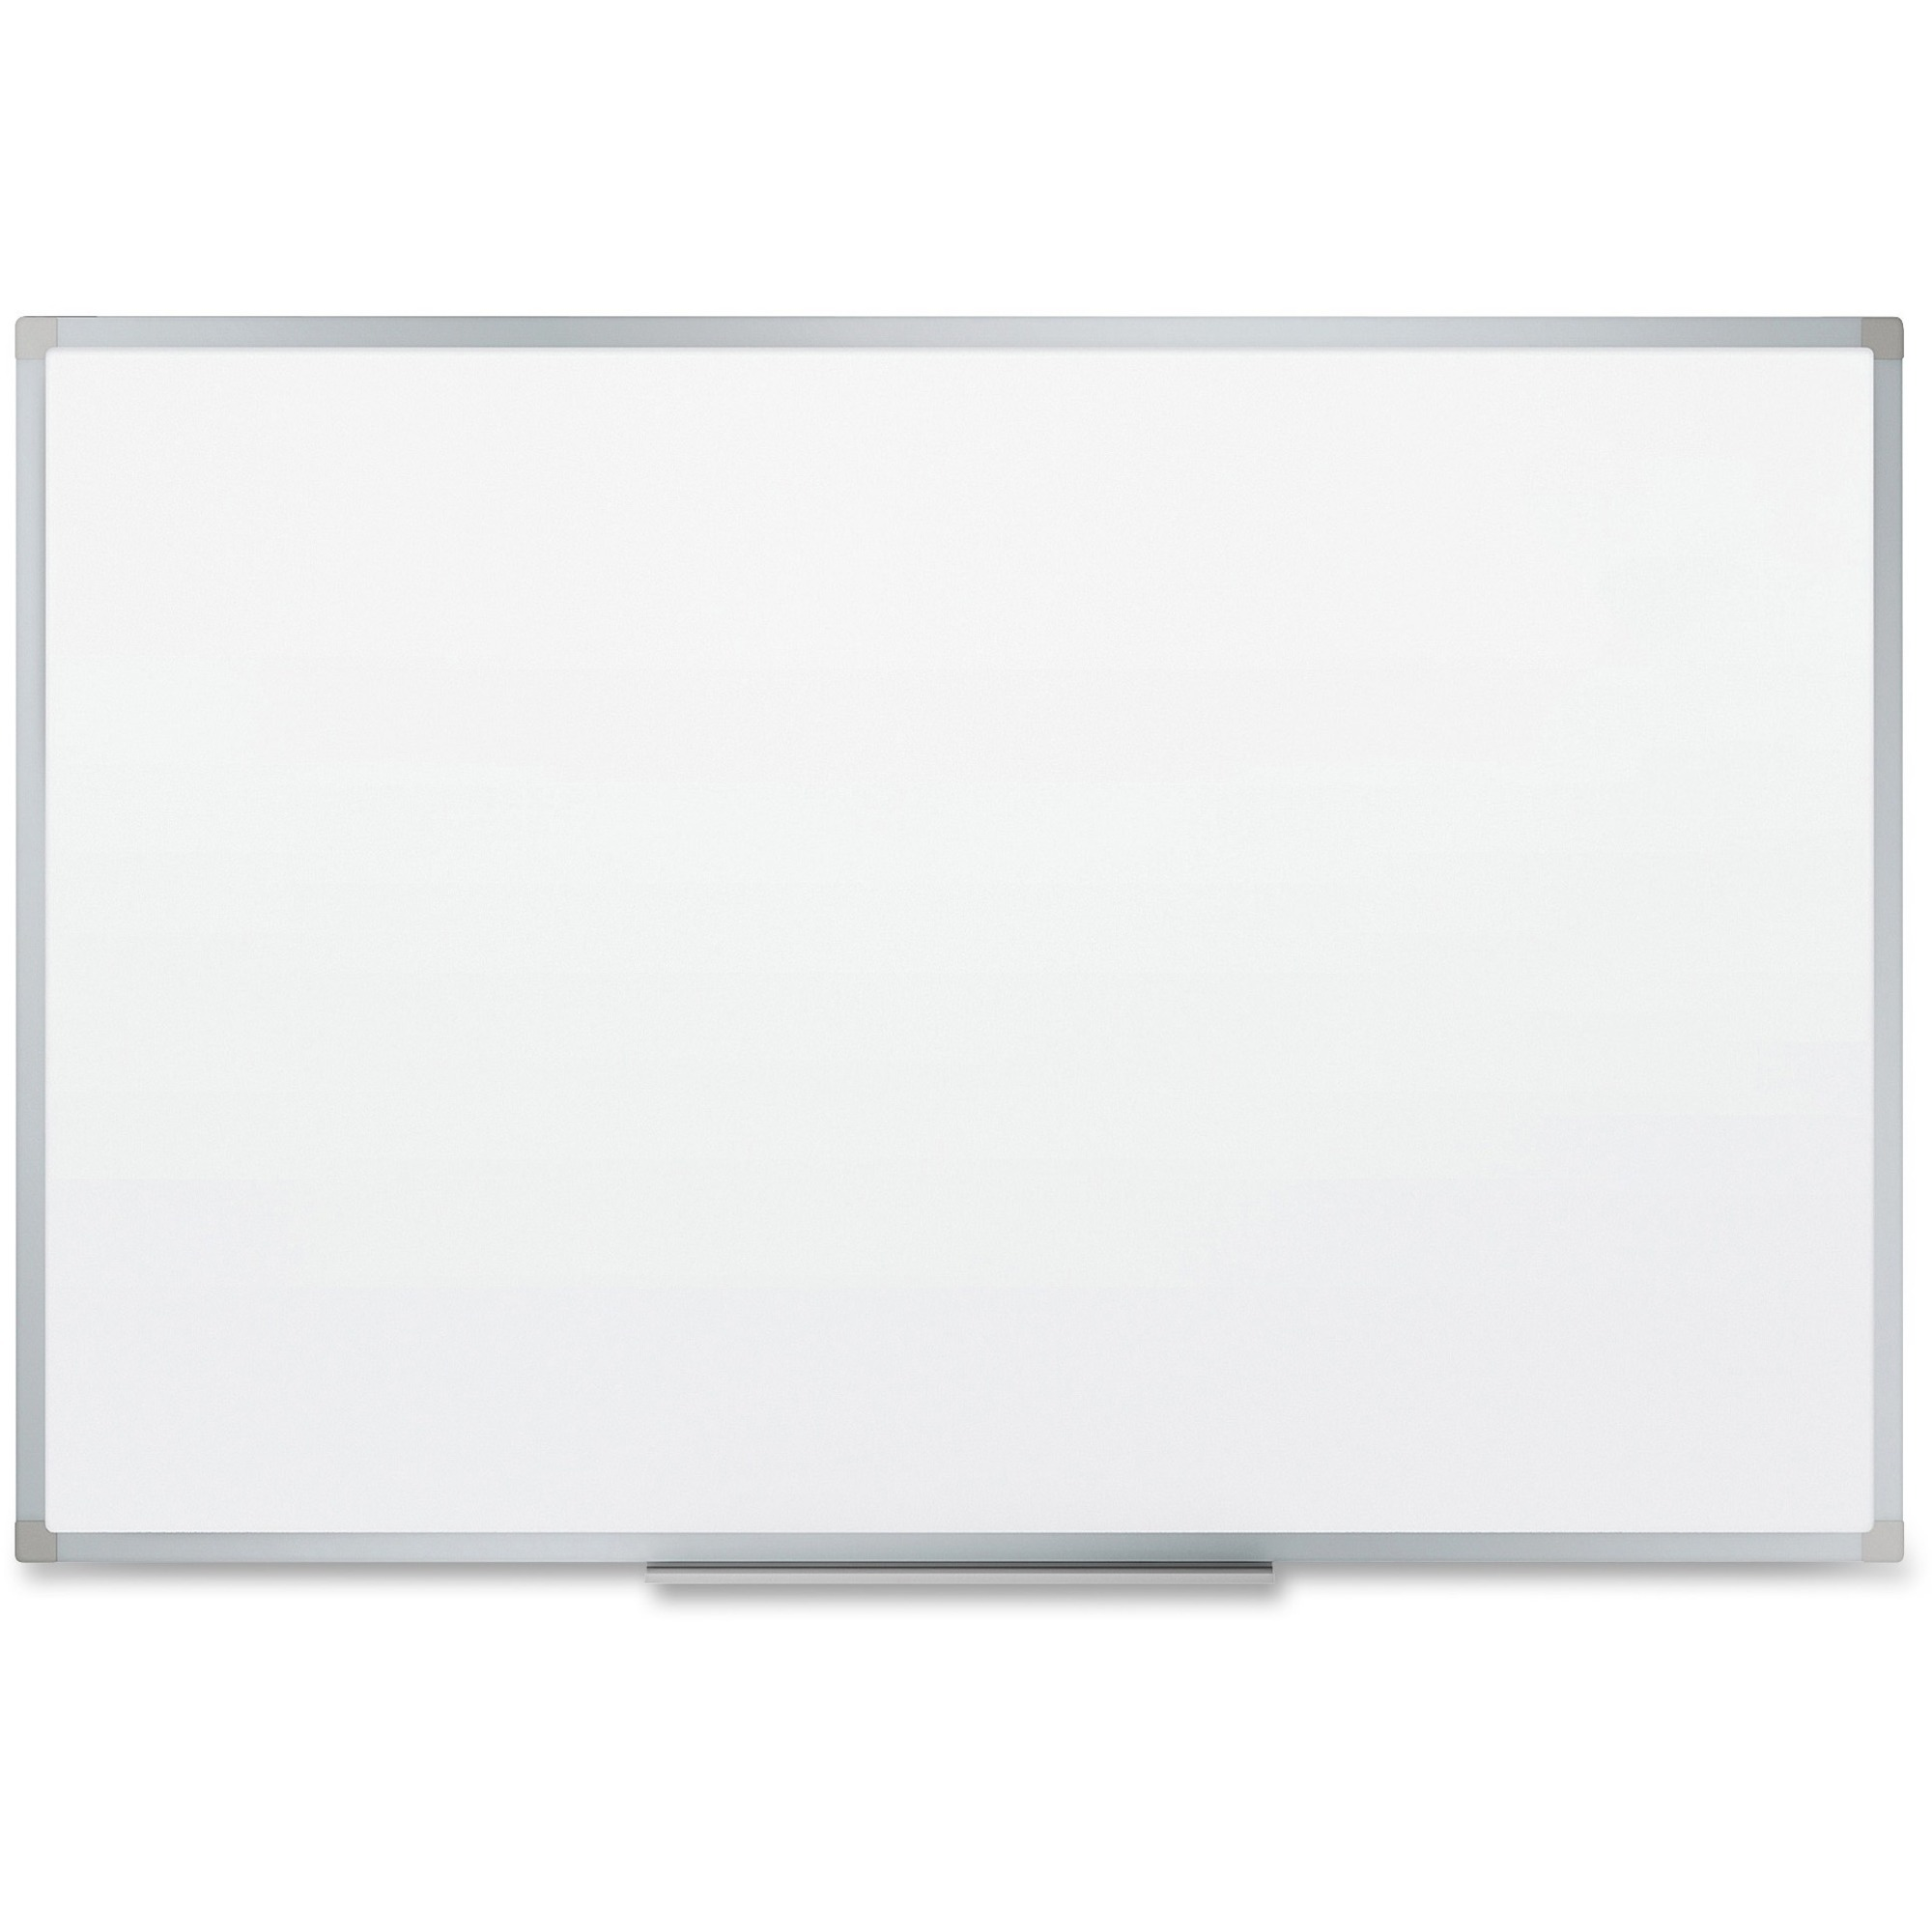 Acco Brands Corporation Mead Dry-erase Board With Marker Tray - 35.9 (3 Ft) Width X 23.8 (2 Ft) Height - White Melamine Surface - Silver Aluminum Frame - 1 Each